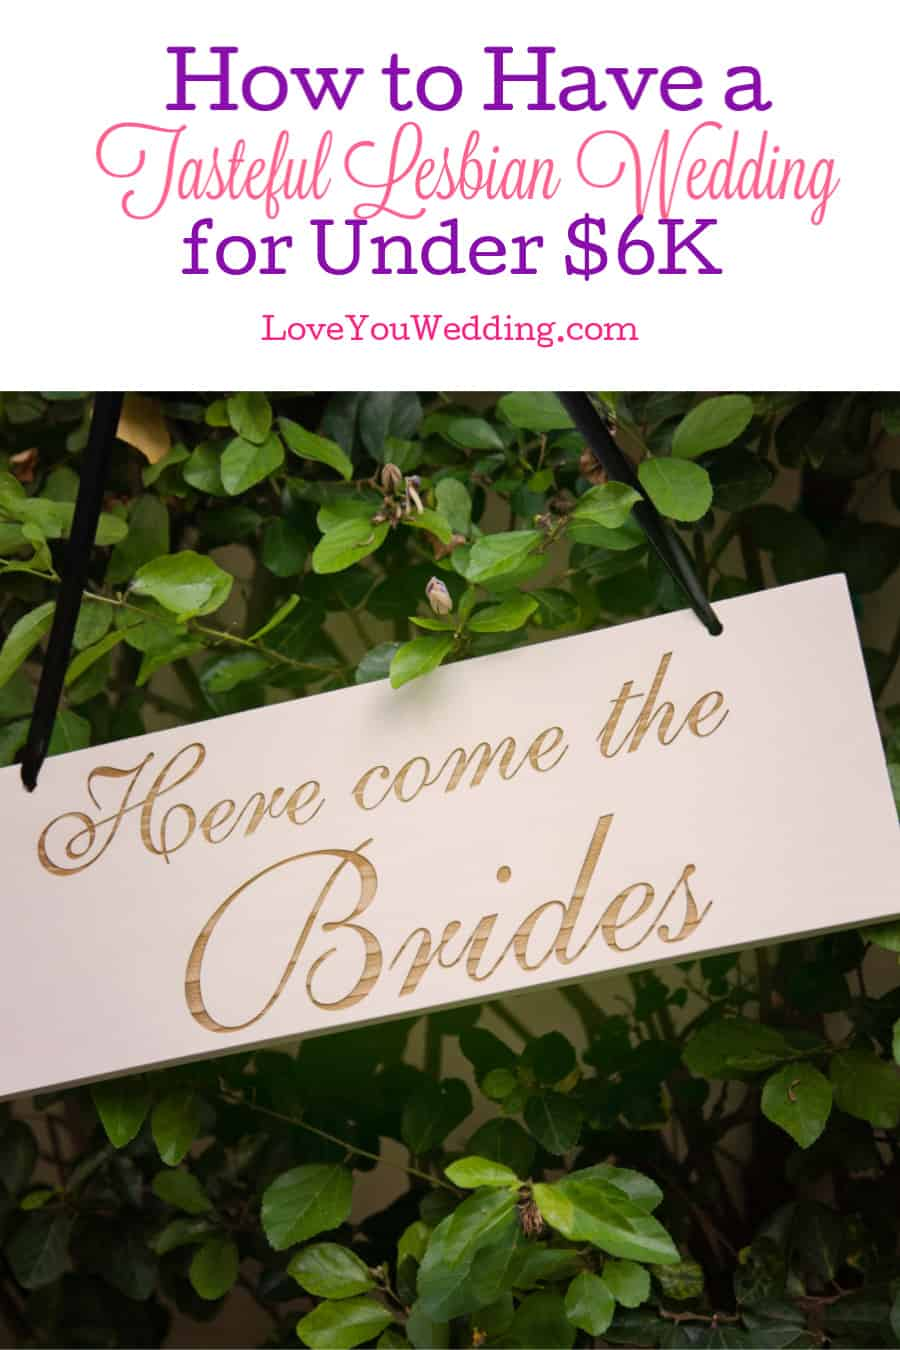 Can you organize a tasteful lesbian wedding for less than $6,000? Turns out, it's absolutely possible, as one bride proved on Reddit. See how she did it!